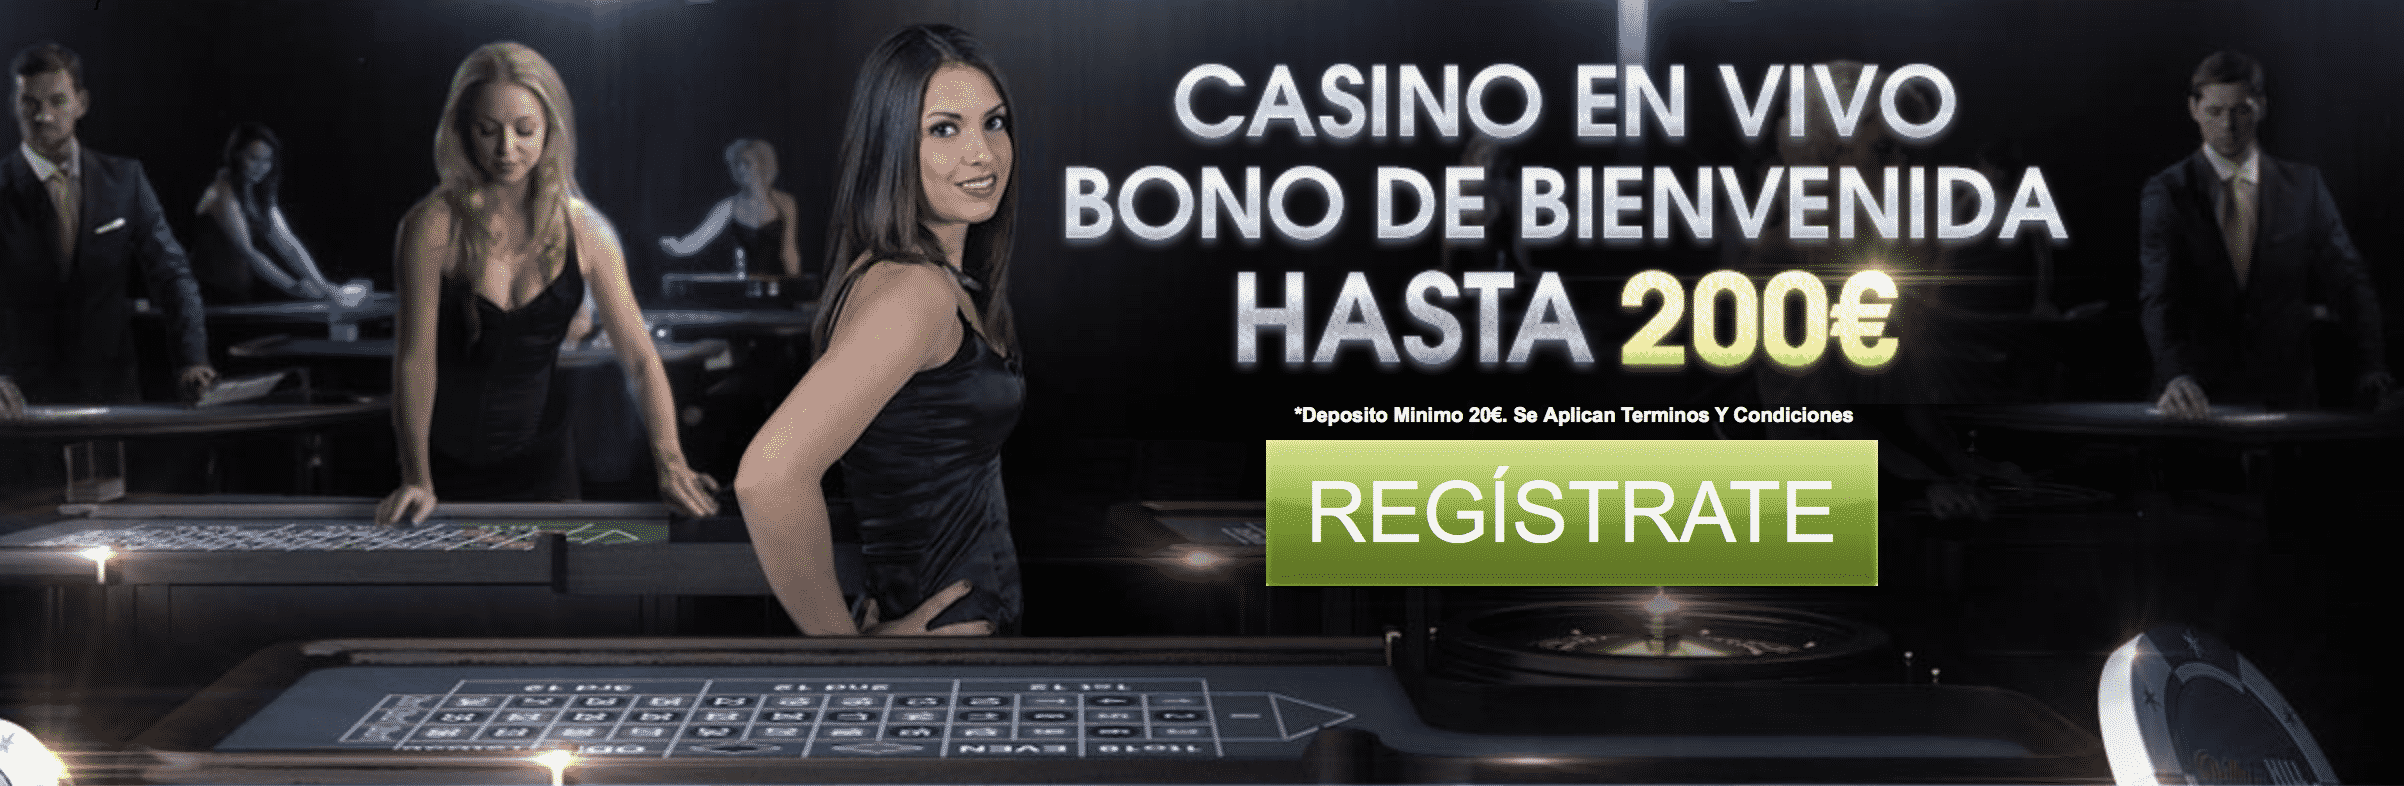 Bono william hill casino gran de bienvenida-821318